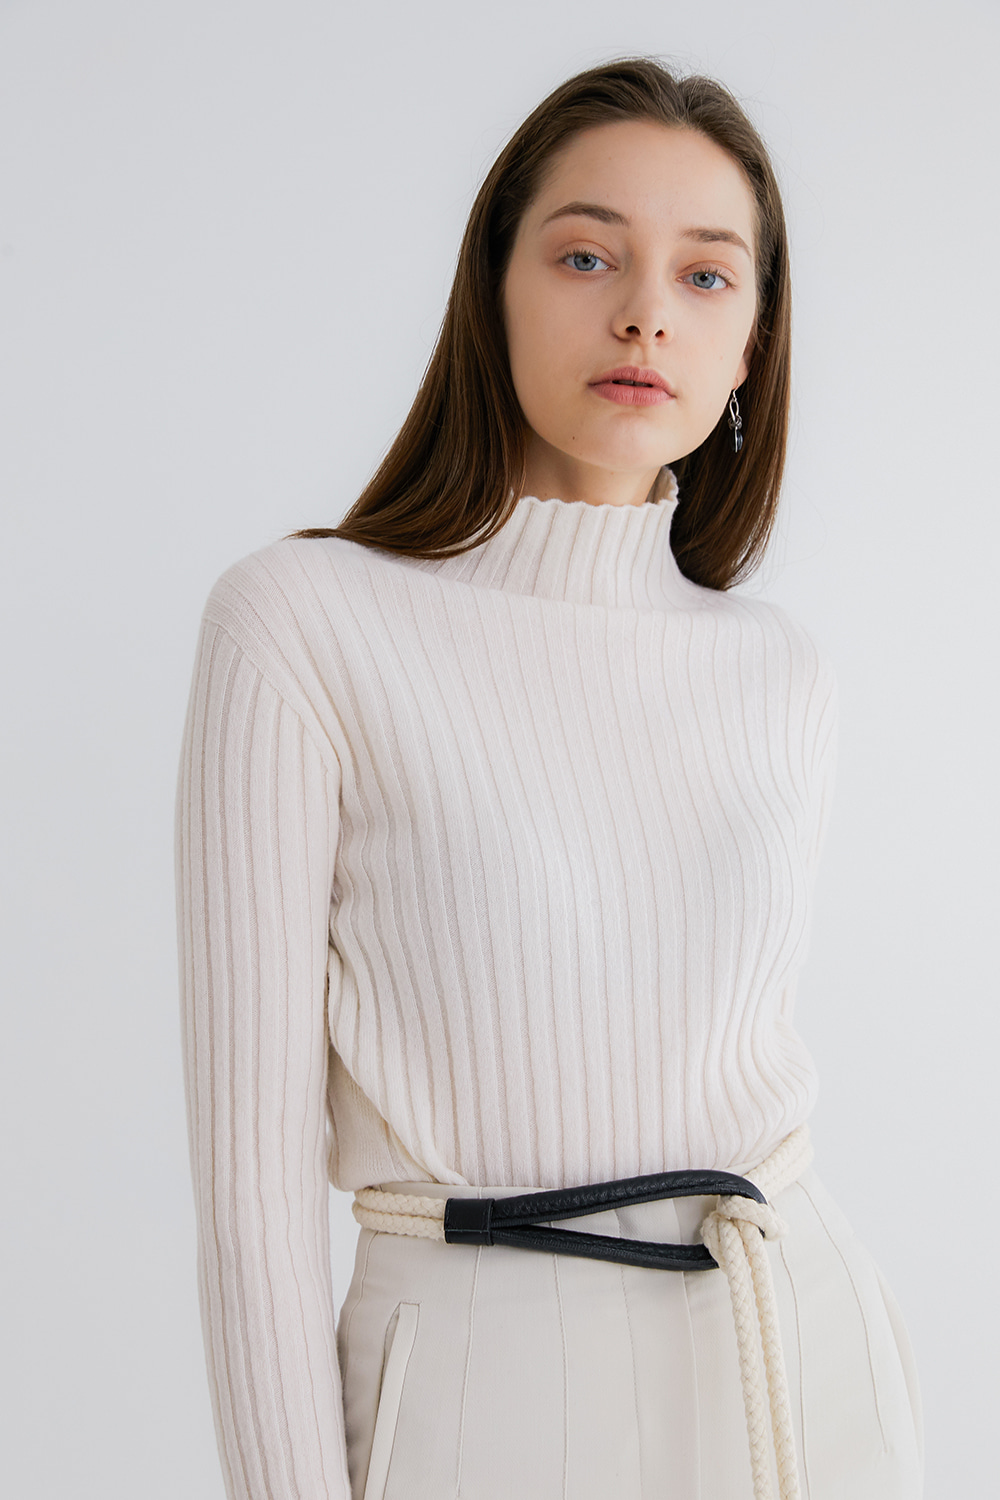 Pure cashmere100 ribbed soft-touch sweater by whole-garment knitting - Pearl Ivory (인기 상품/주문 폭주/품절/2차 재입고)